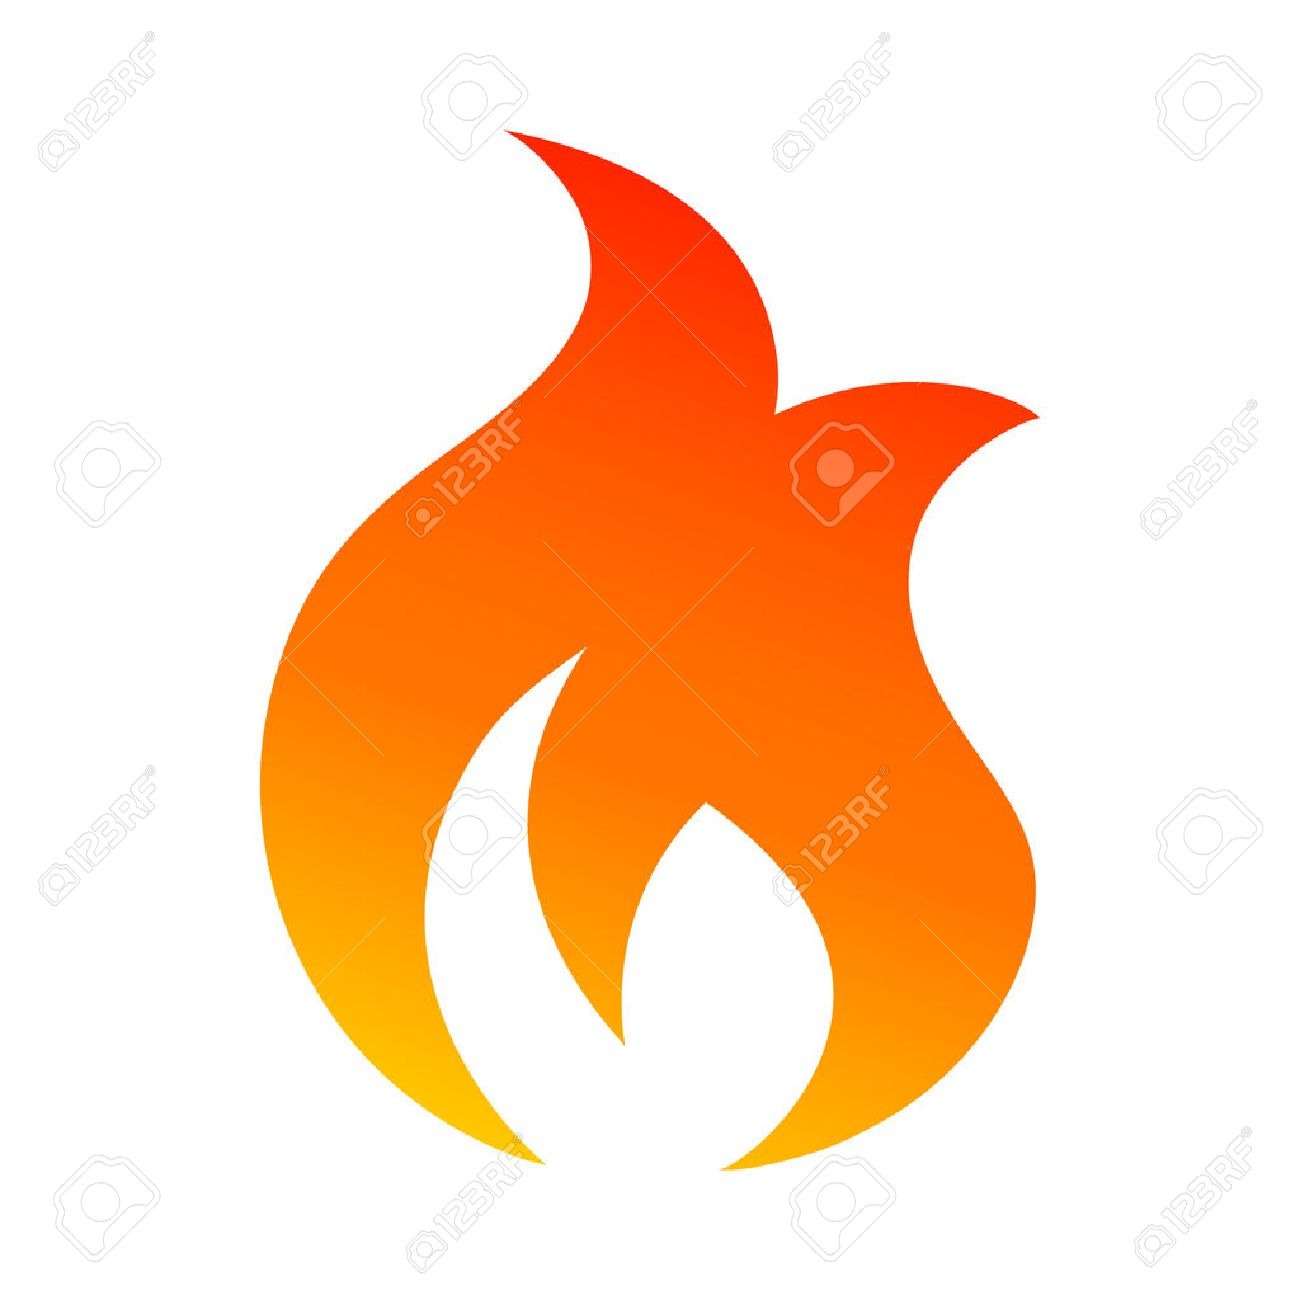 flame vector icon royalty free cliparts vectors and stock rh 123rf com flame vector file flame vector file